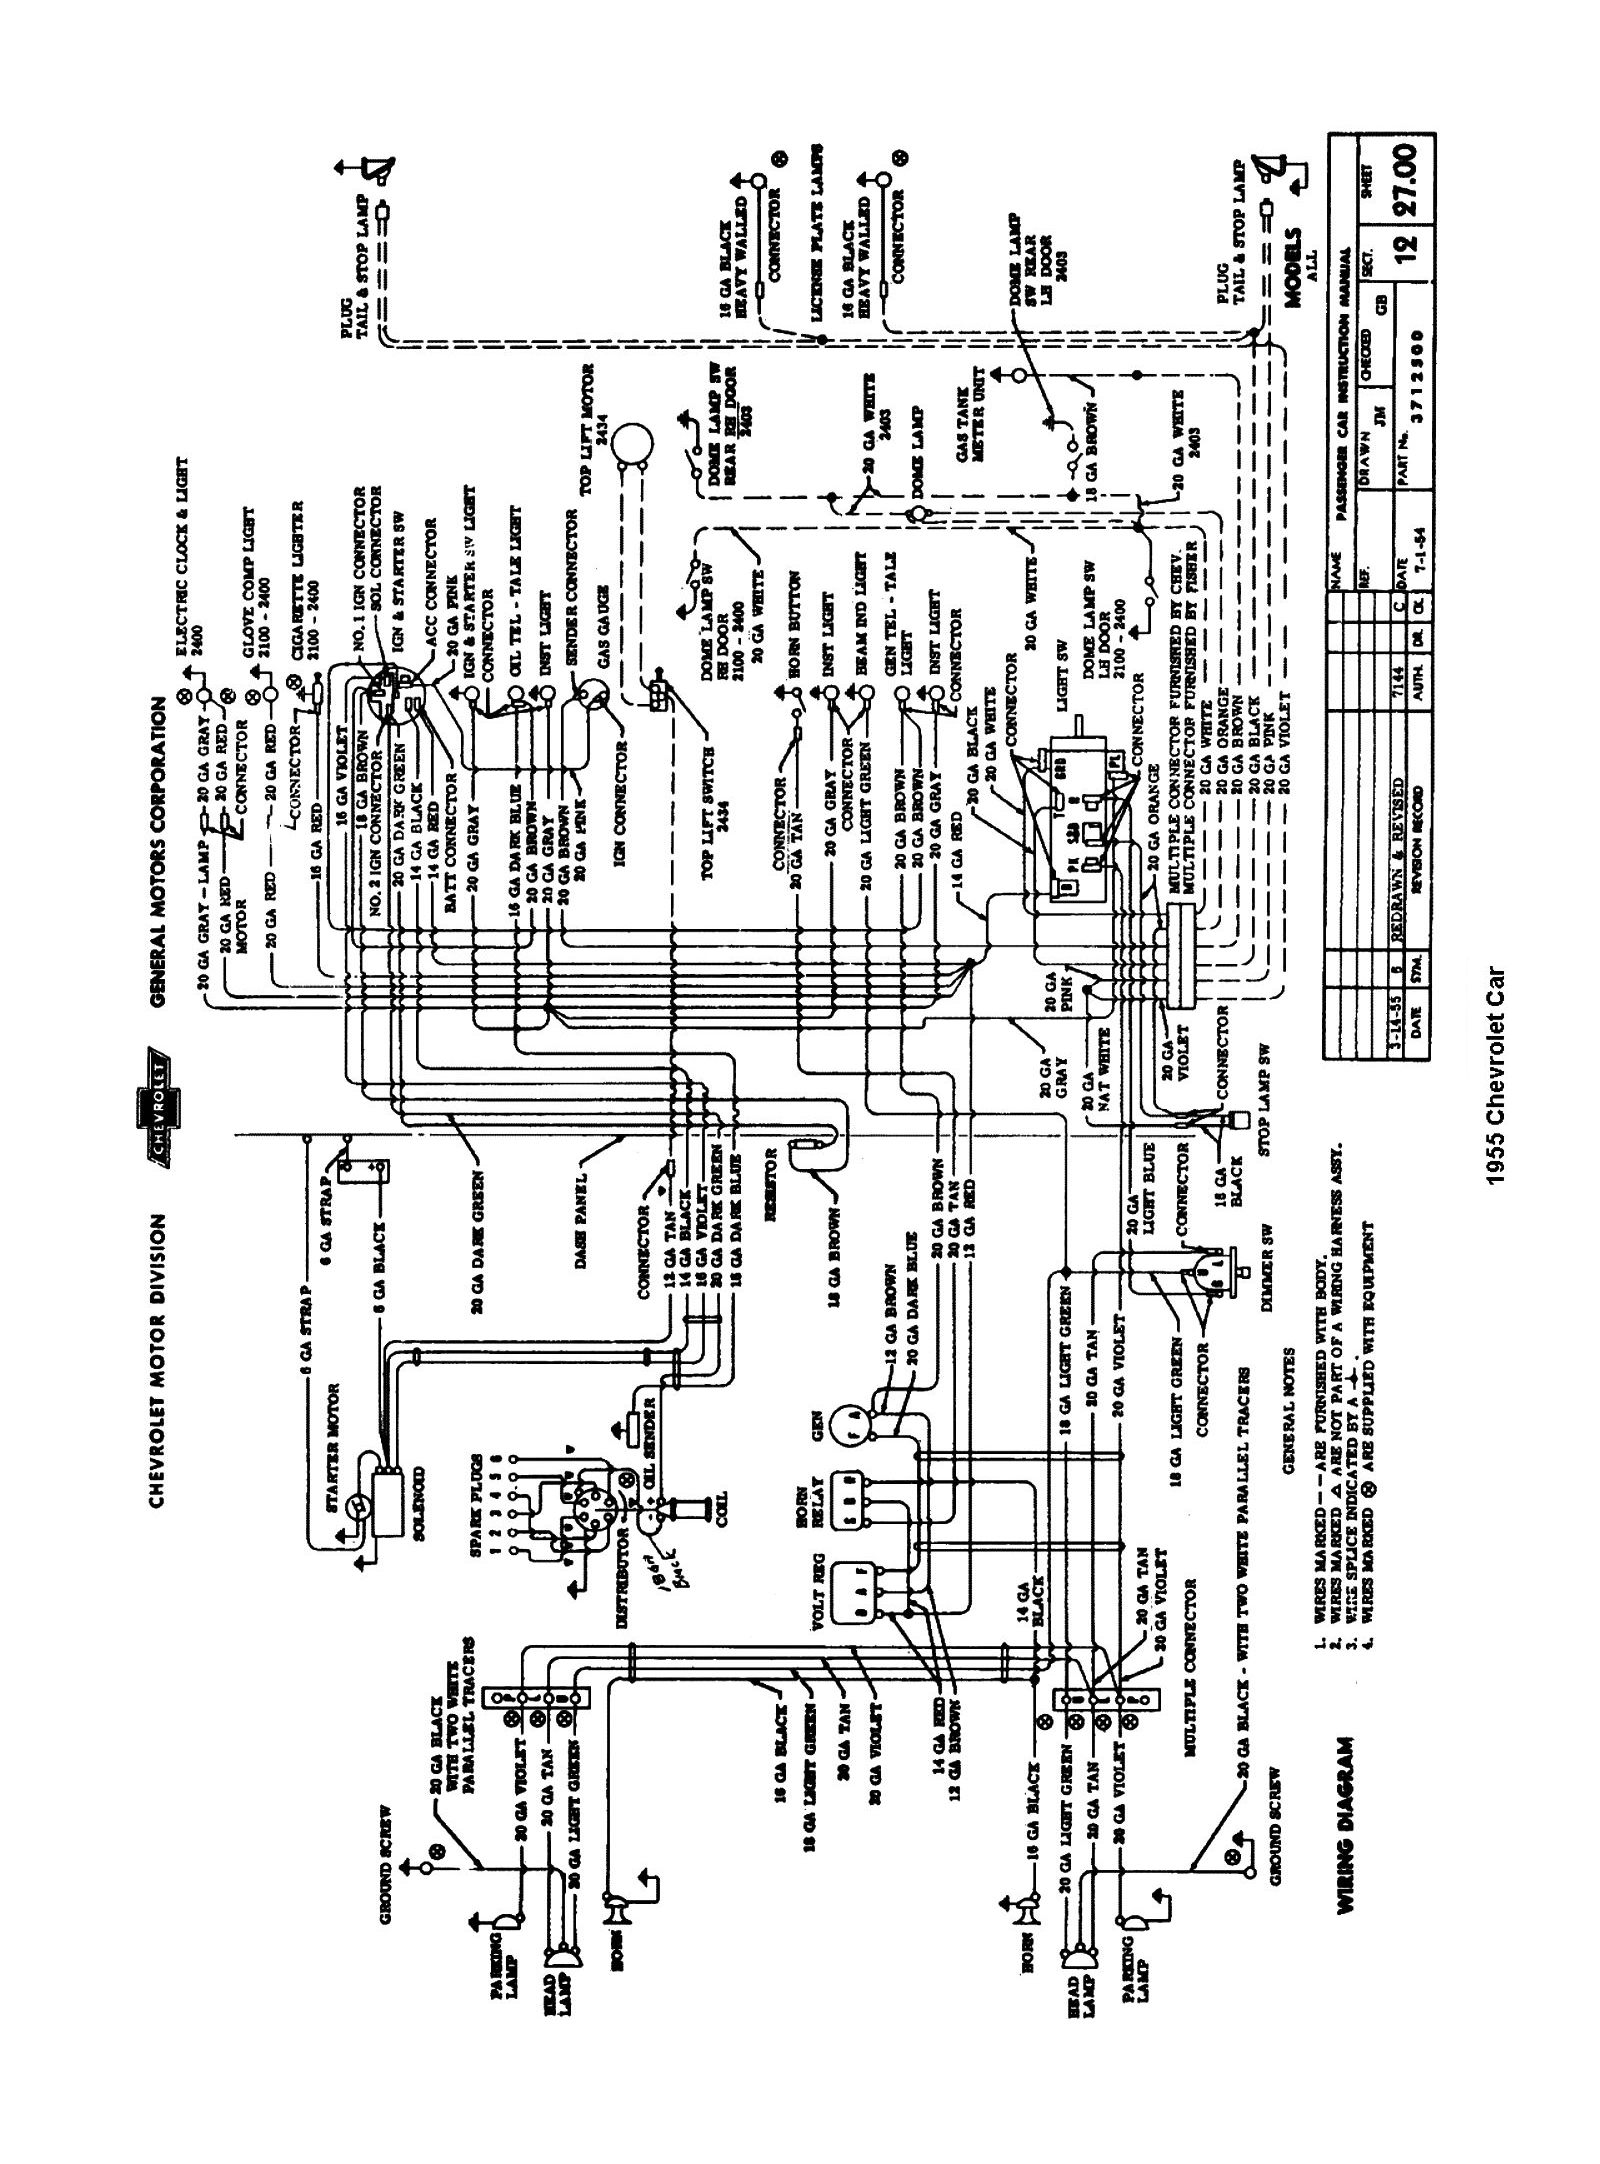 2007 Dodge Caliber Ignition Wiring Diagram additionally 1981 1989 Gmc Chevy Truck Vin Decoder Chart further Wiring as well Schematics wiring also Motor De Arranque Se Denomina Motor De. on chevrolet wiring diagram